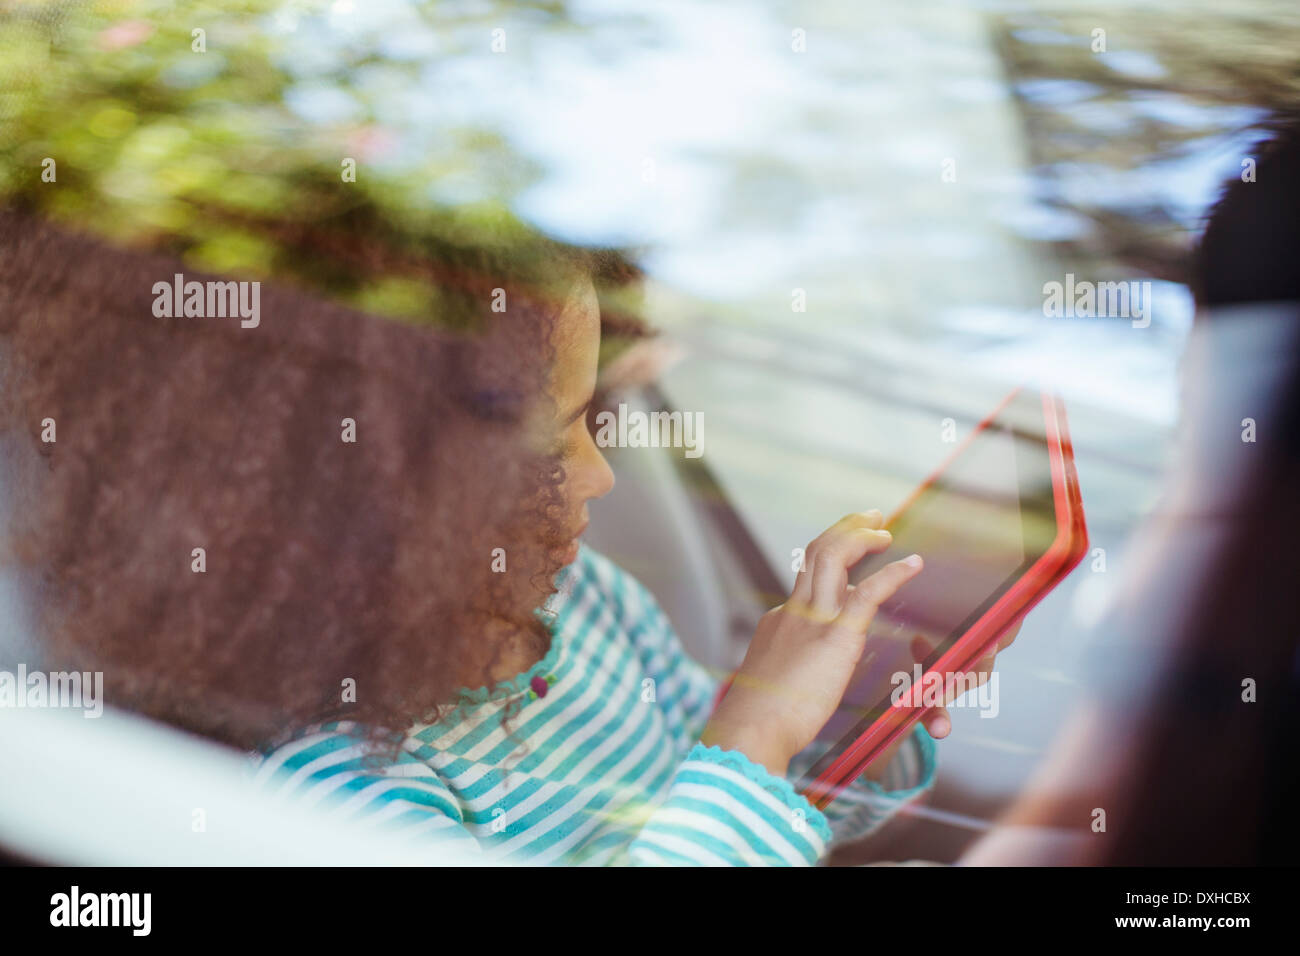 Girl using digital tablet in back seat of car - Stock Image